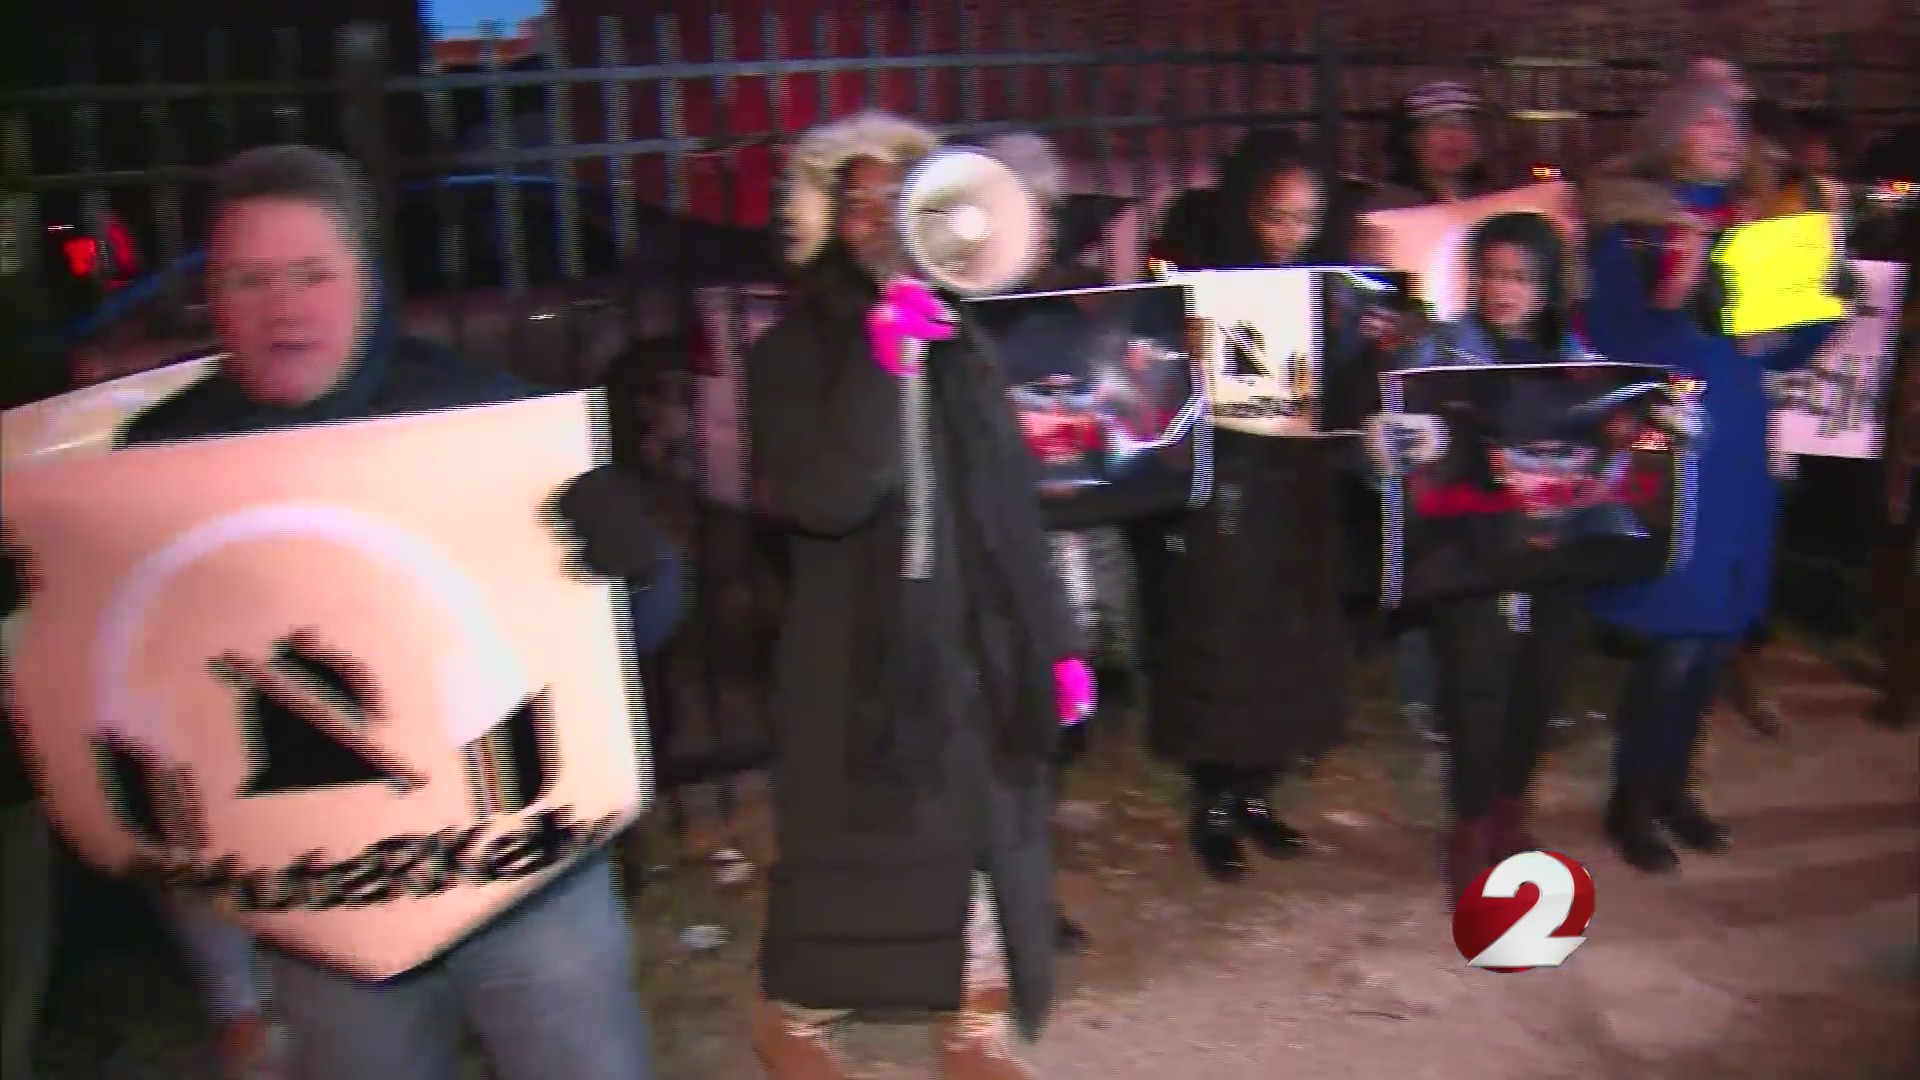 Protesters call for boycott of R. Kelly